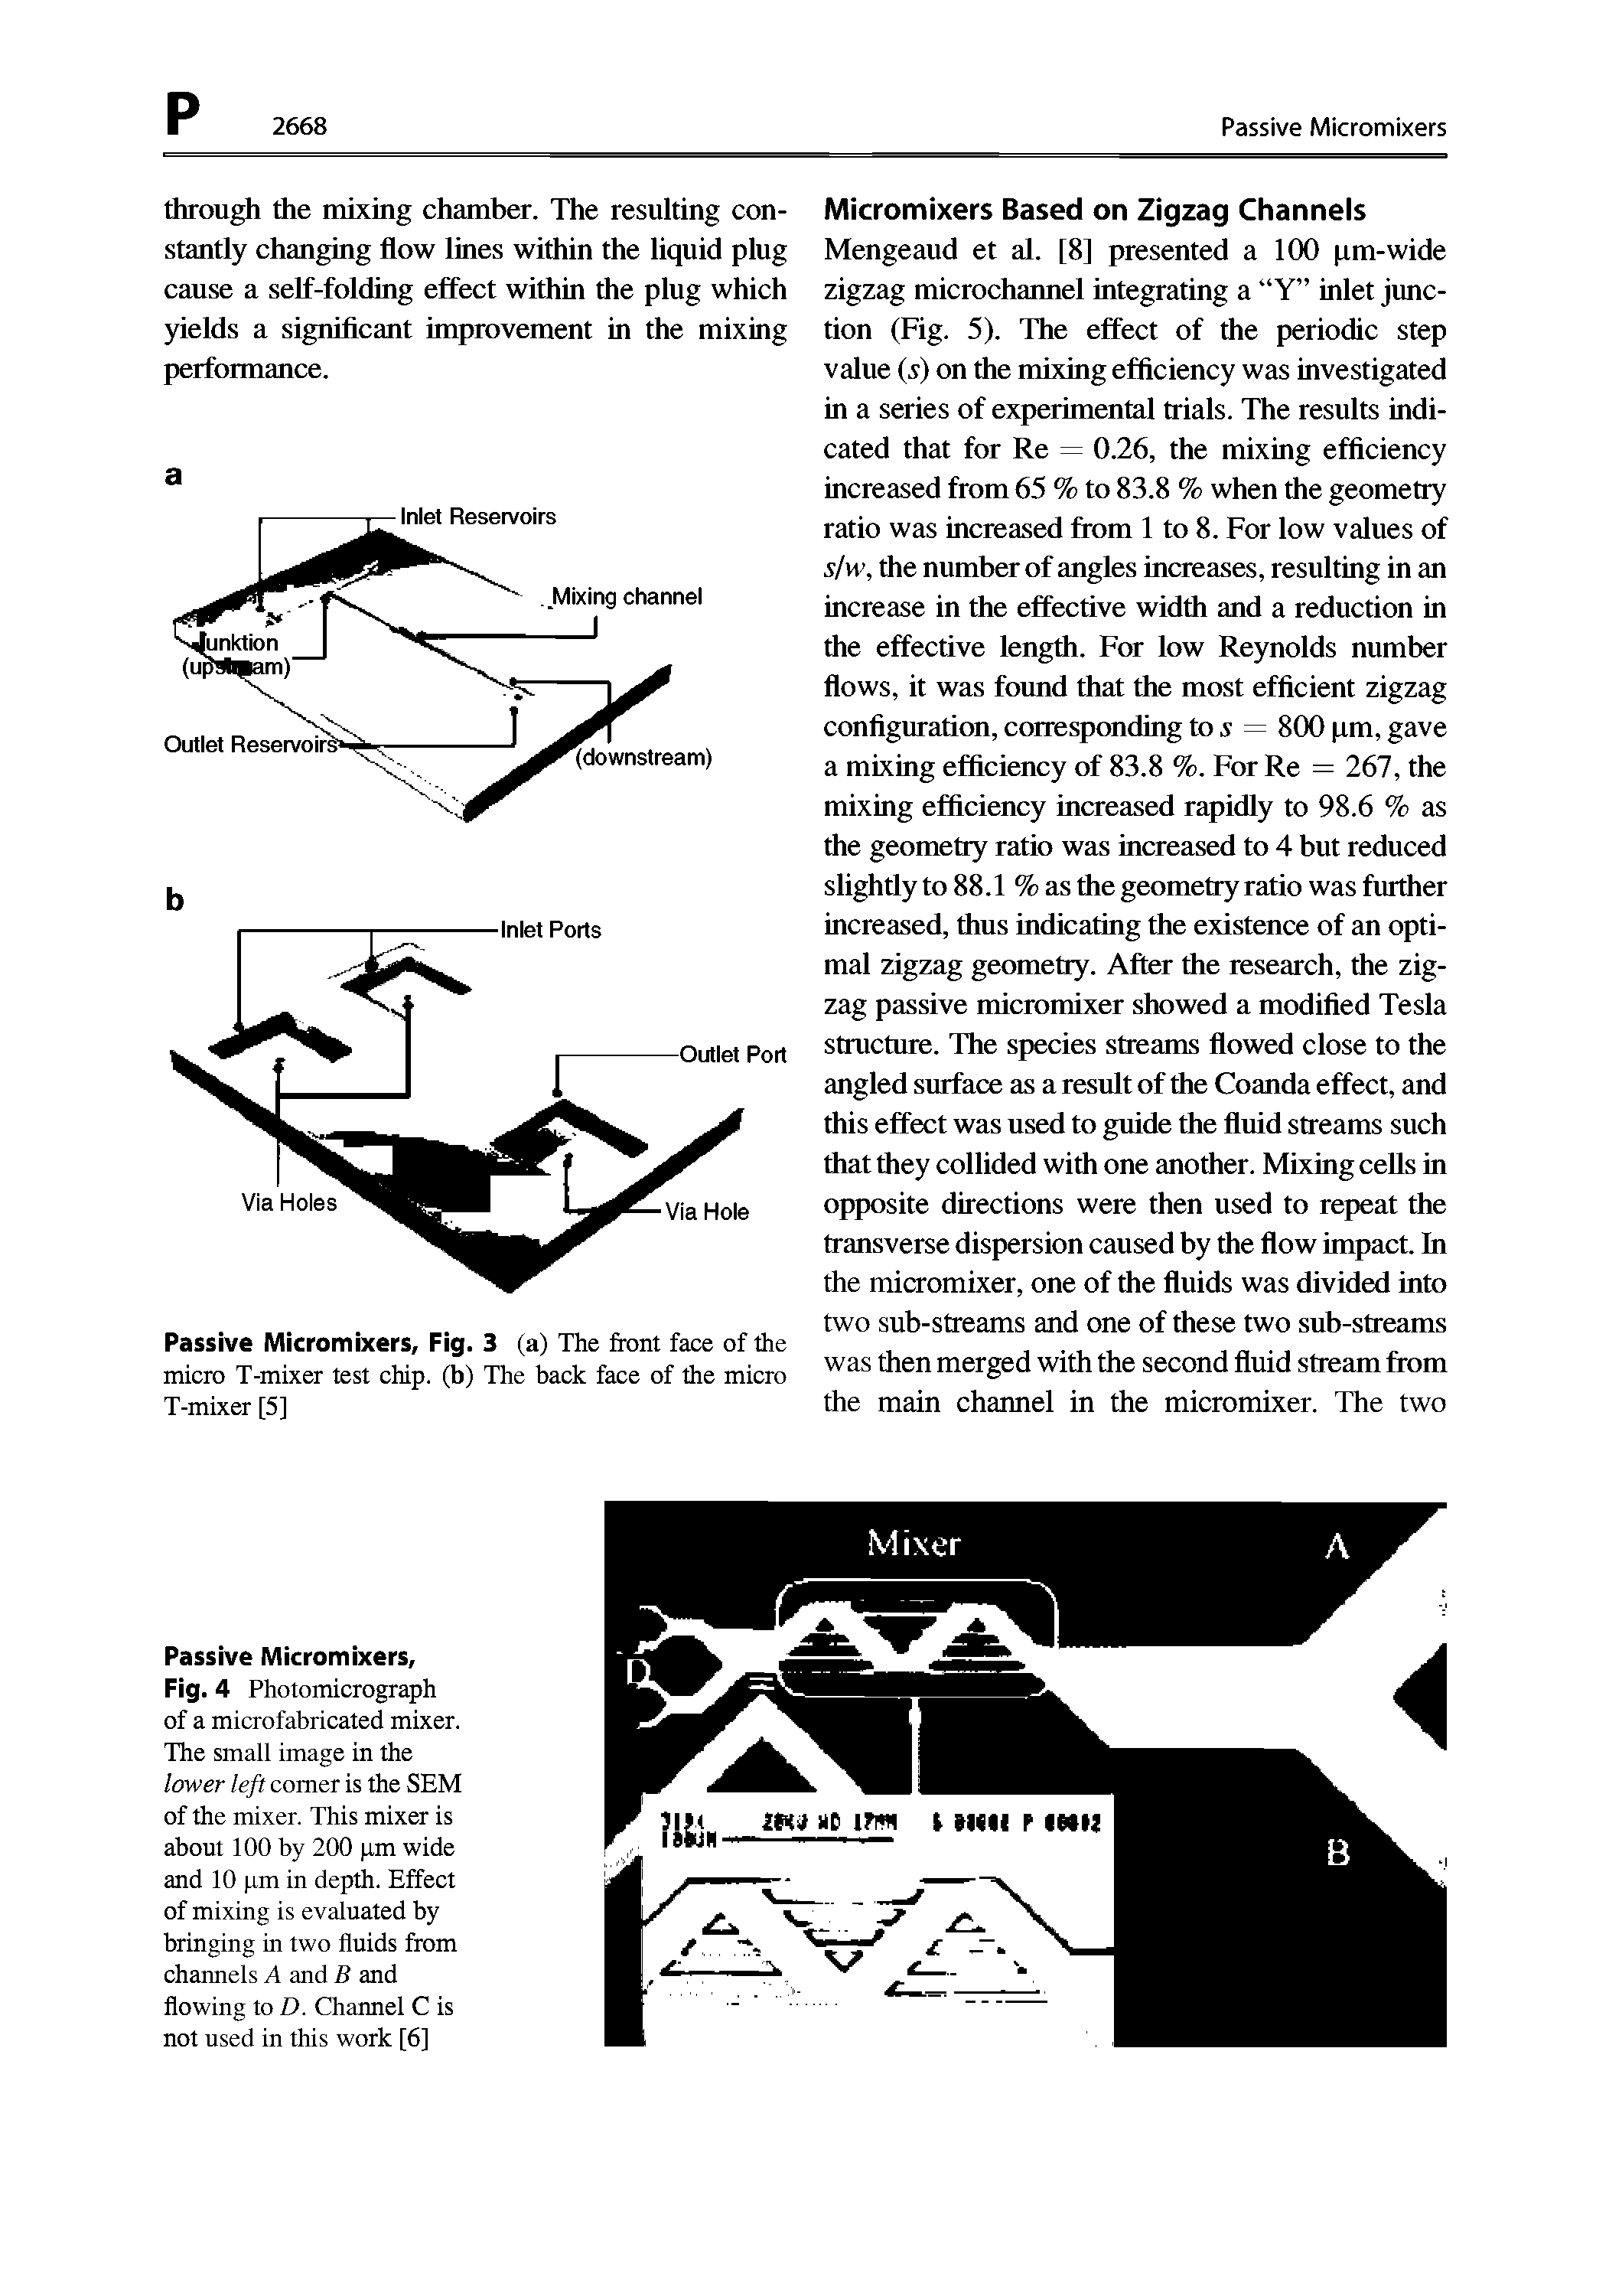 "Fig. 4 Photomicrograph of a microfabricated mixer. The <a href=""/info/small_images"">small image</a> in the Icwer left comer is the SEM of the mixer. This mixer is about 100 by 200 pm wide and 10 pm in depth. Effect of mixing is evaluated by bringing in two fluids from channels A and B and flowing to D. Channel C is not used in this work [6]"